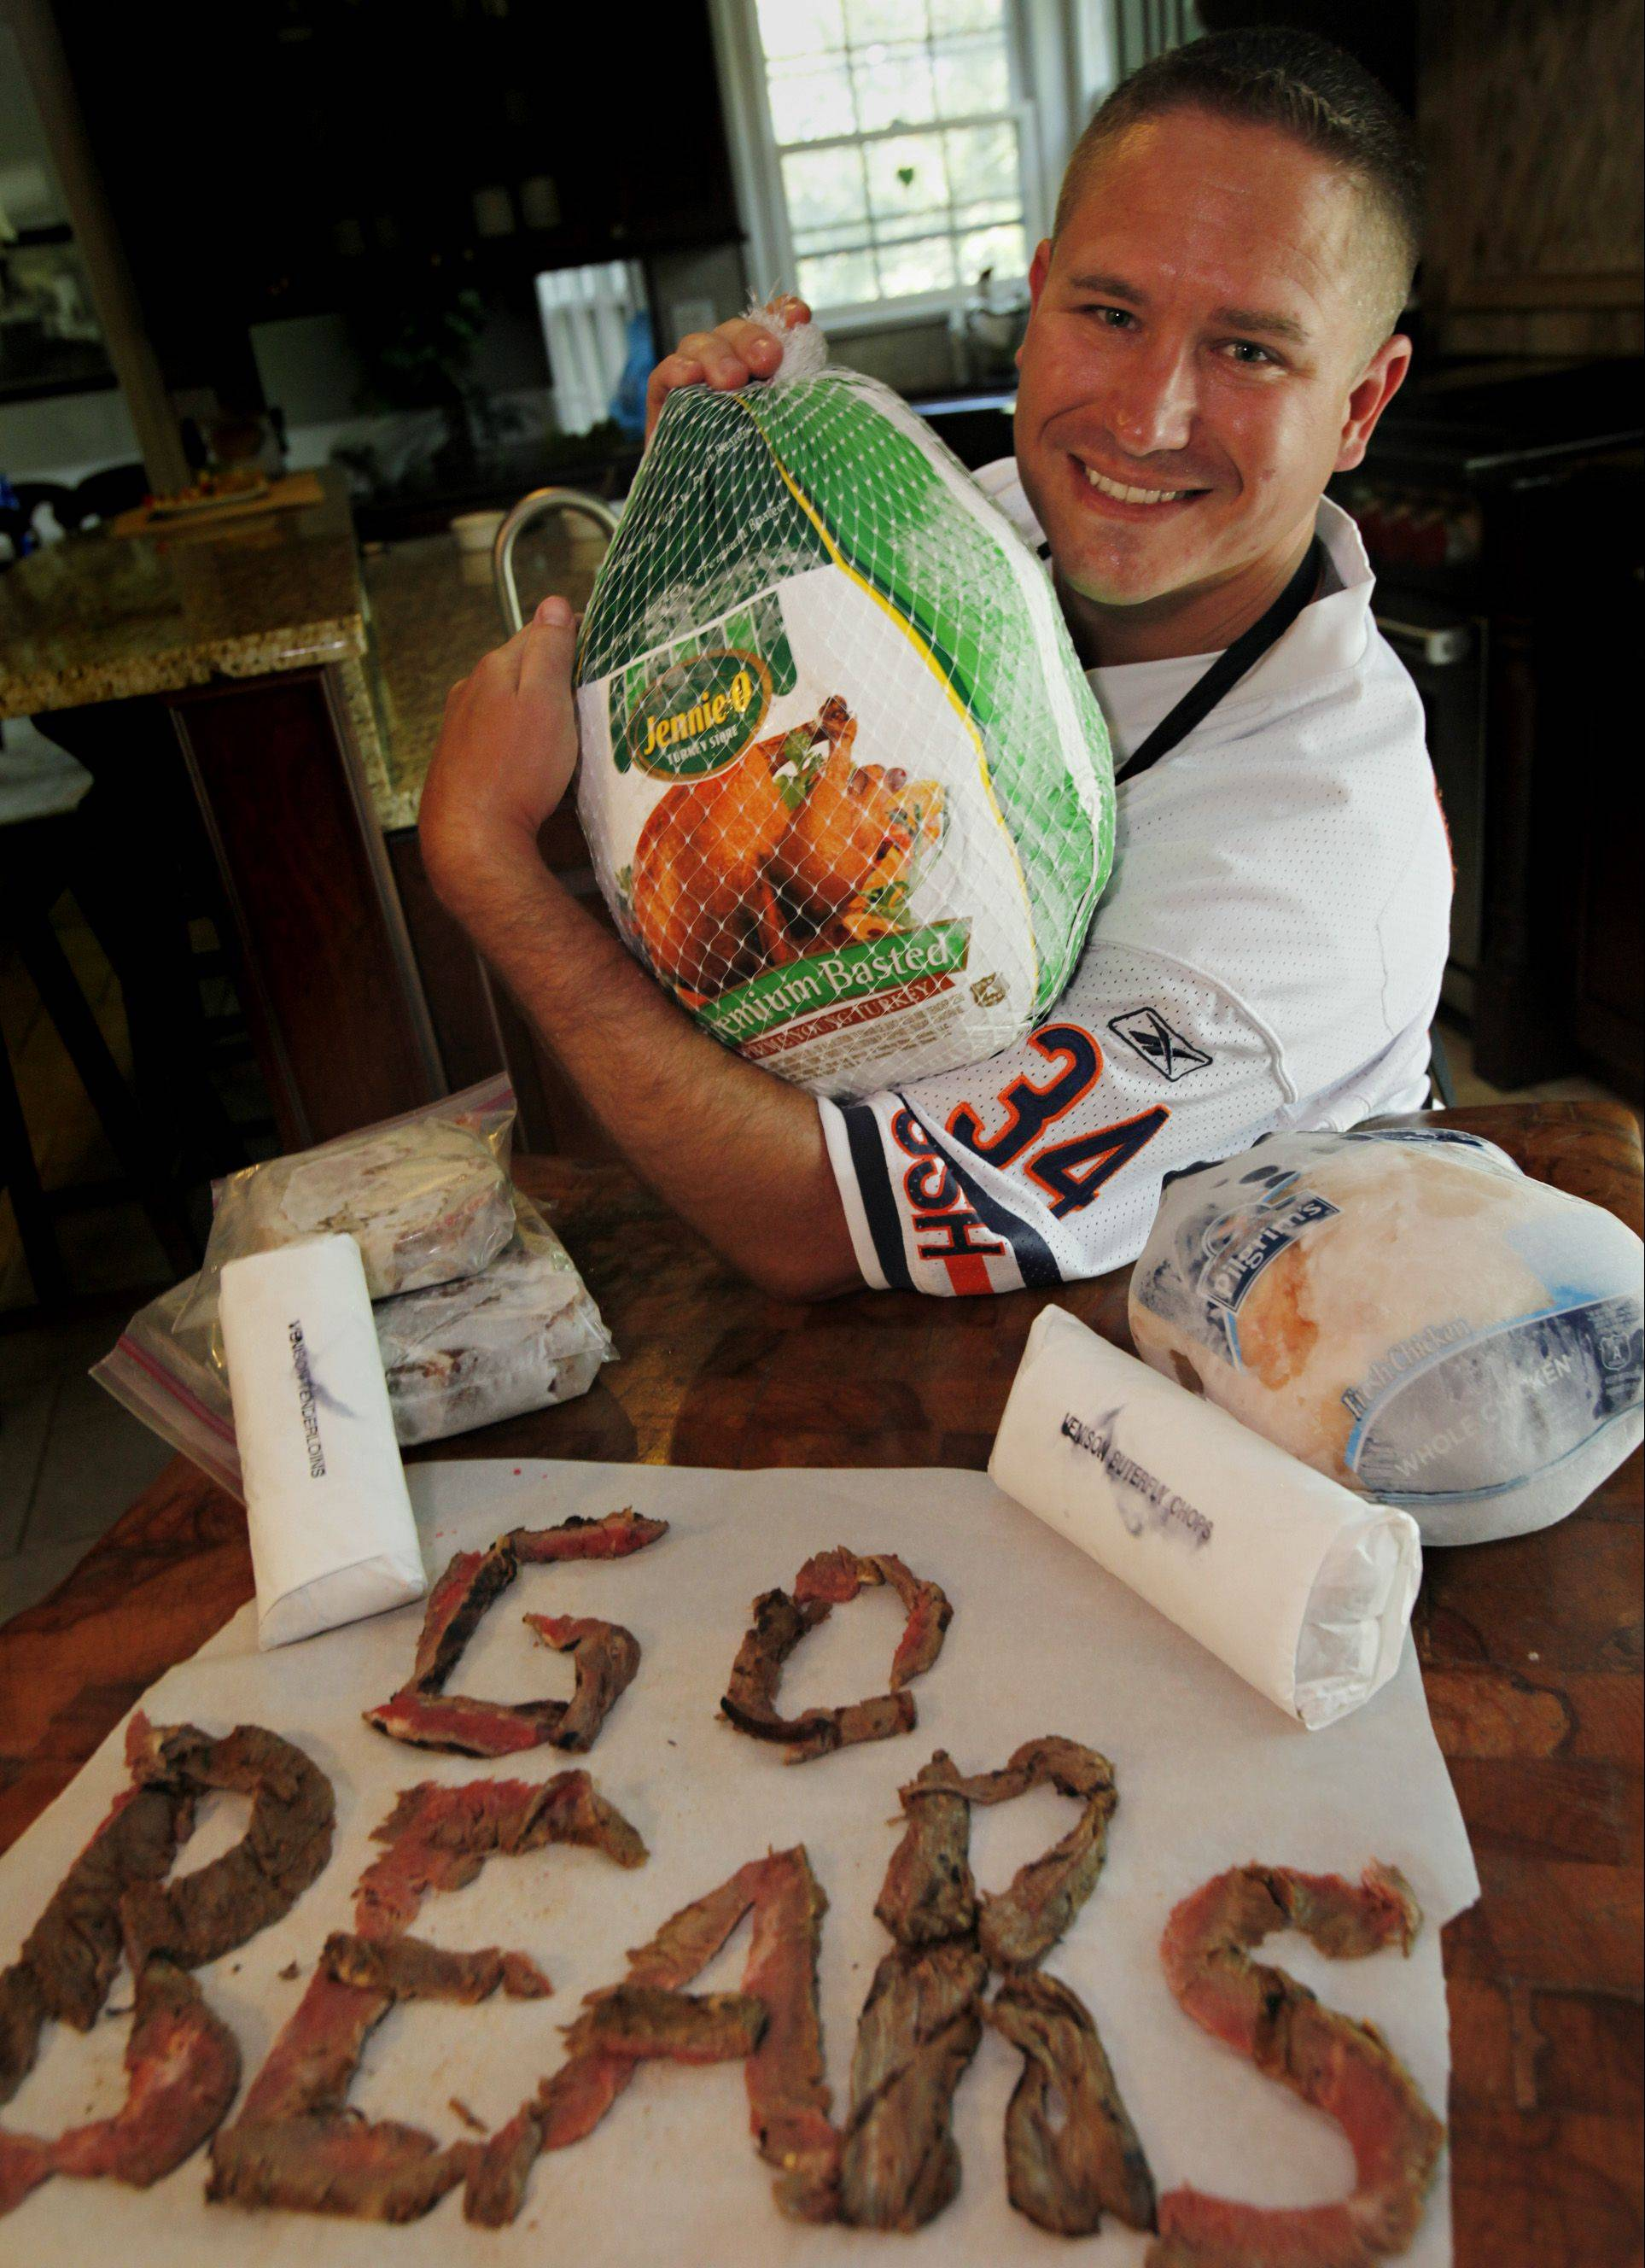 Jeff Zilch of Fox River Grove loves to cook with meat, any kind of meat.